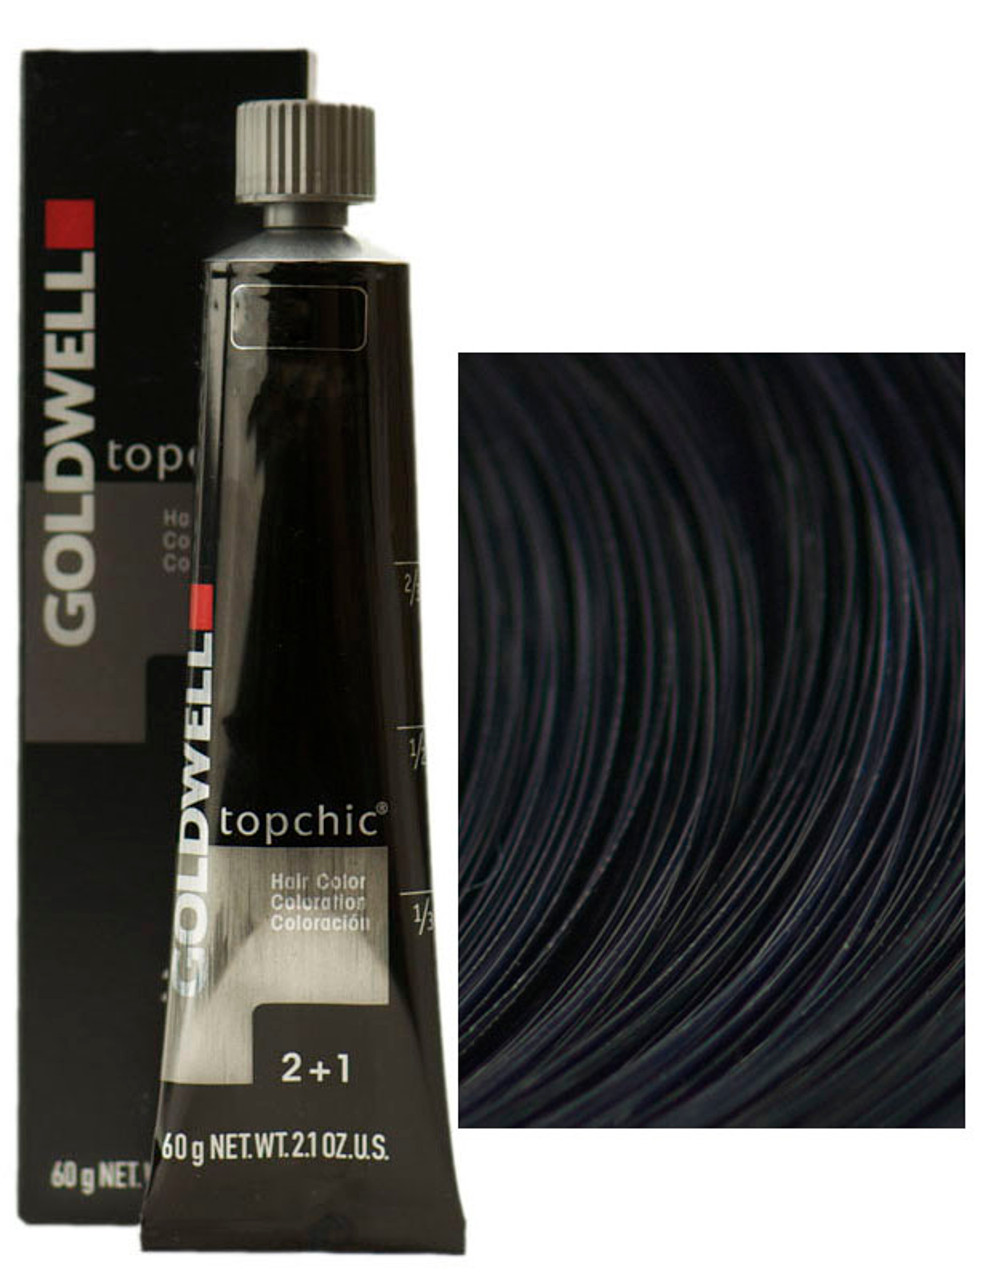 Goldwell Topchic Professional Hair Color (21 oz tube) - SleekShop